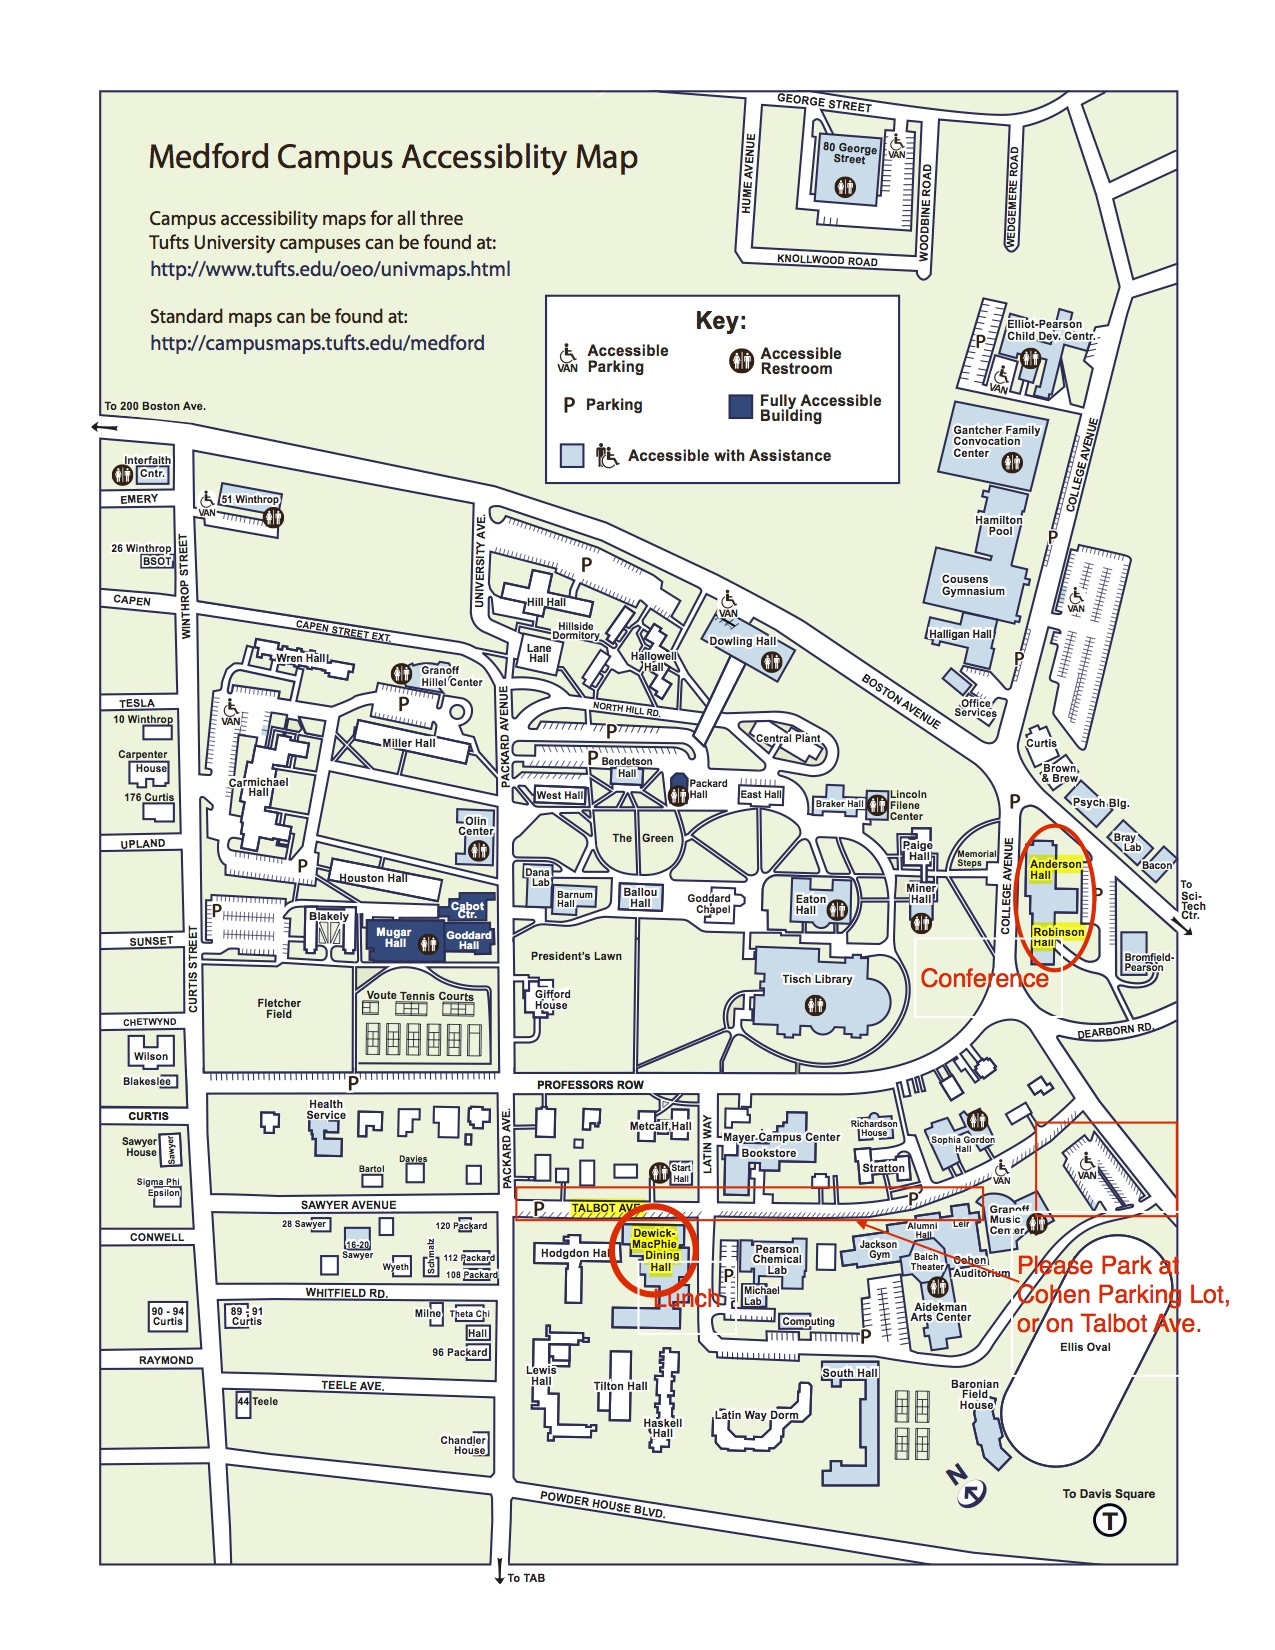 Tufts Medford Campus Map.Driving Direction And Parking For The Neclta Conference At Tufts